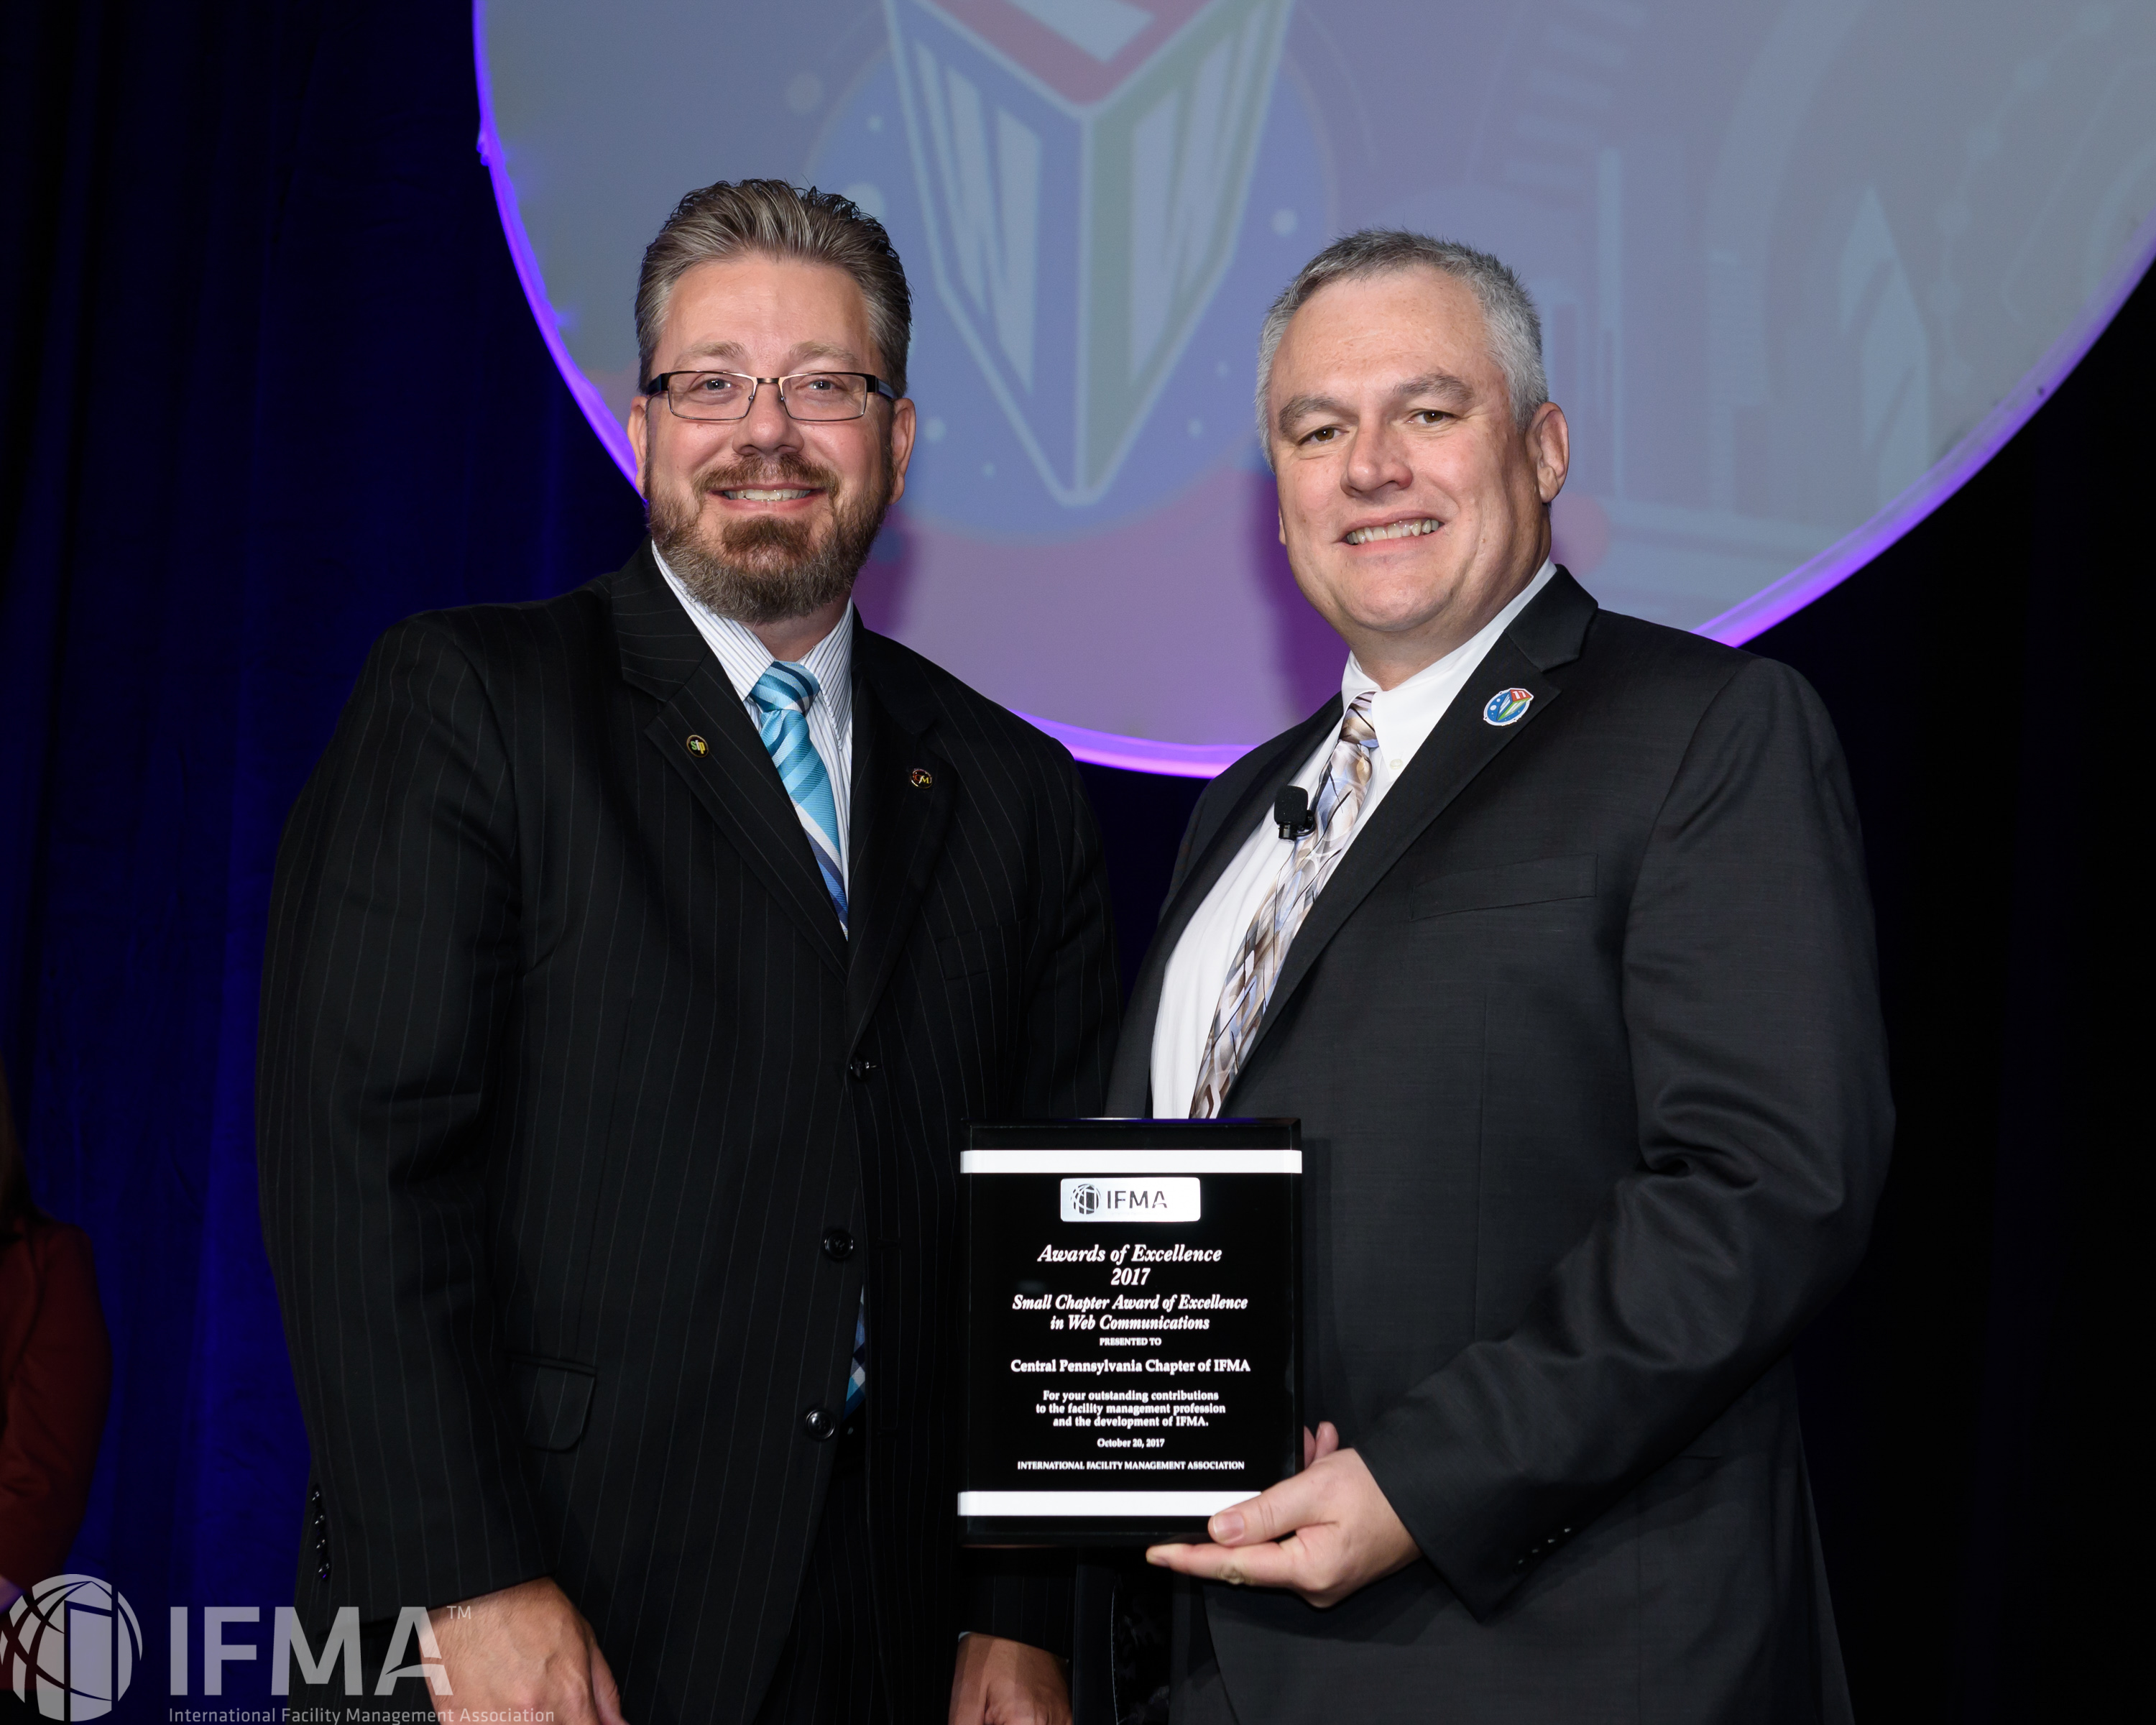 Central Pennsylvania Chapter of IFMA receives Small Chapter Award for Excellence in Web Communications